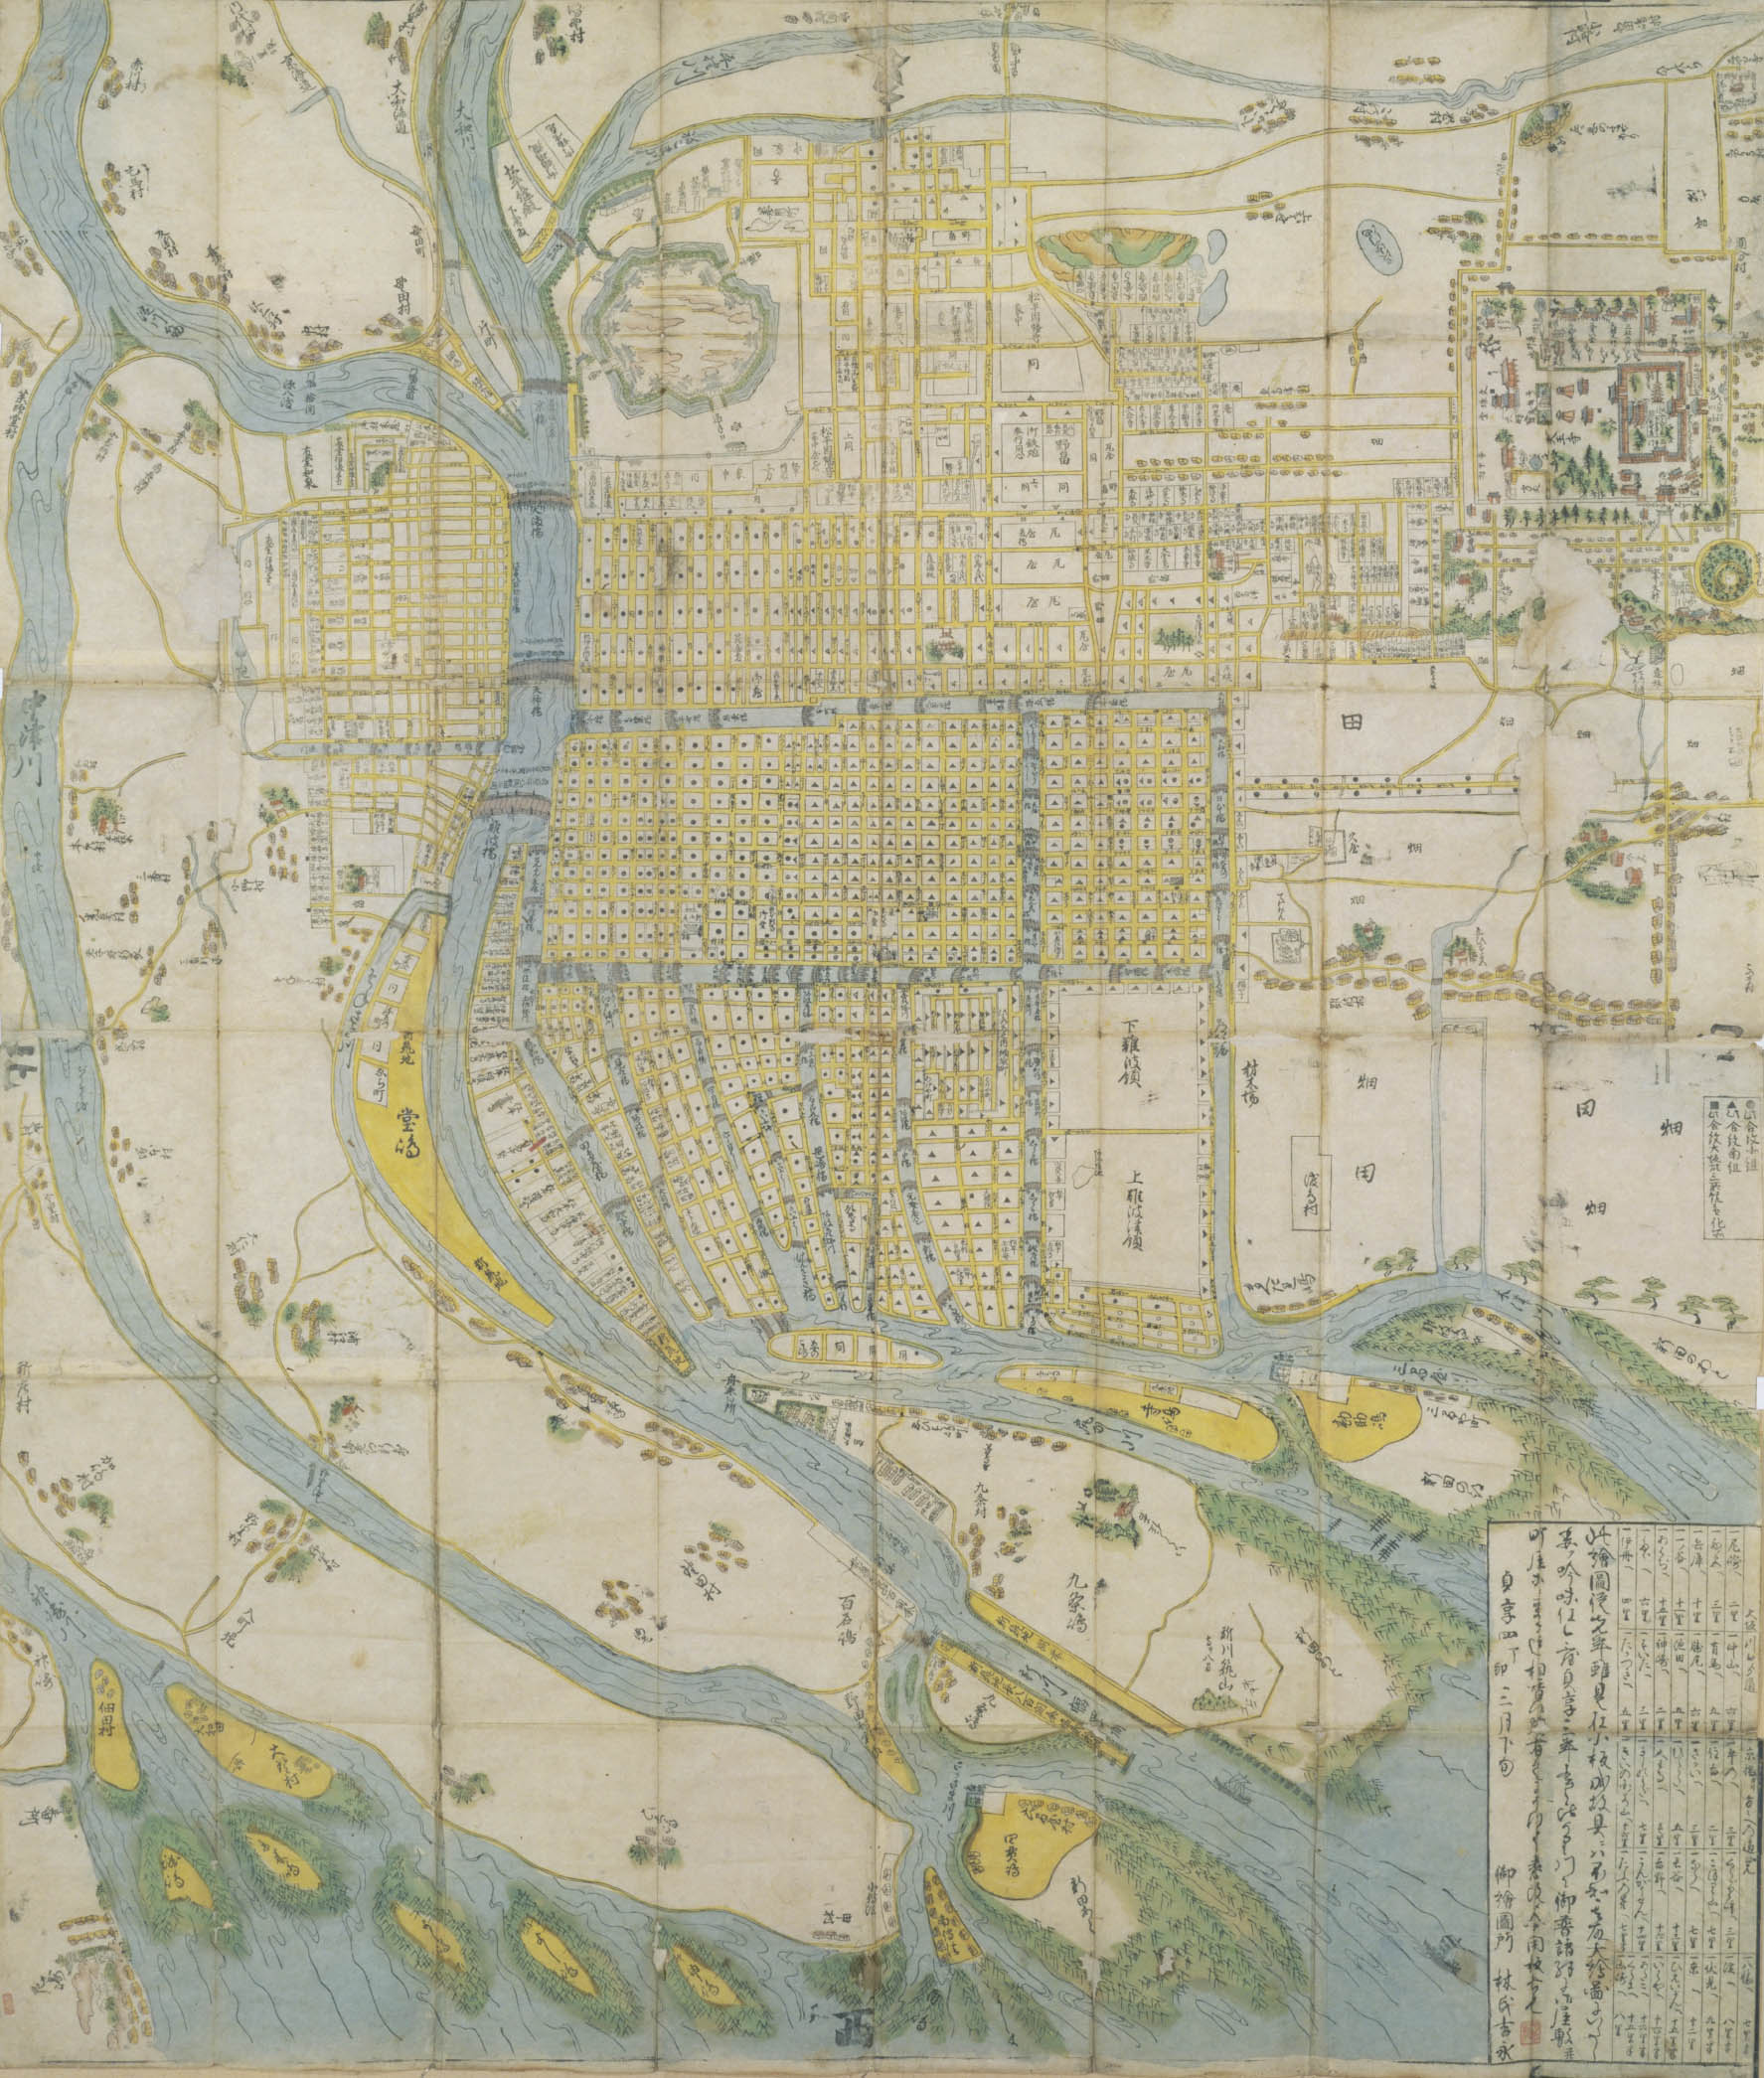 P02-02 – Lecture 2 : An Overview of Early Modern Osaka's History